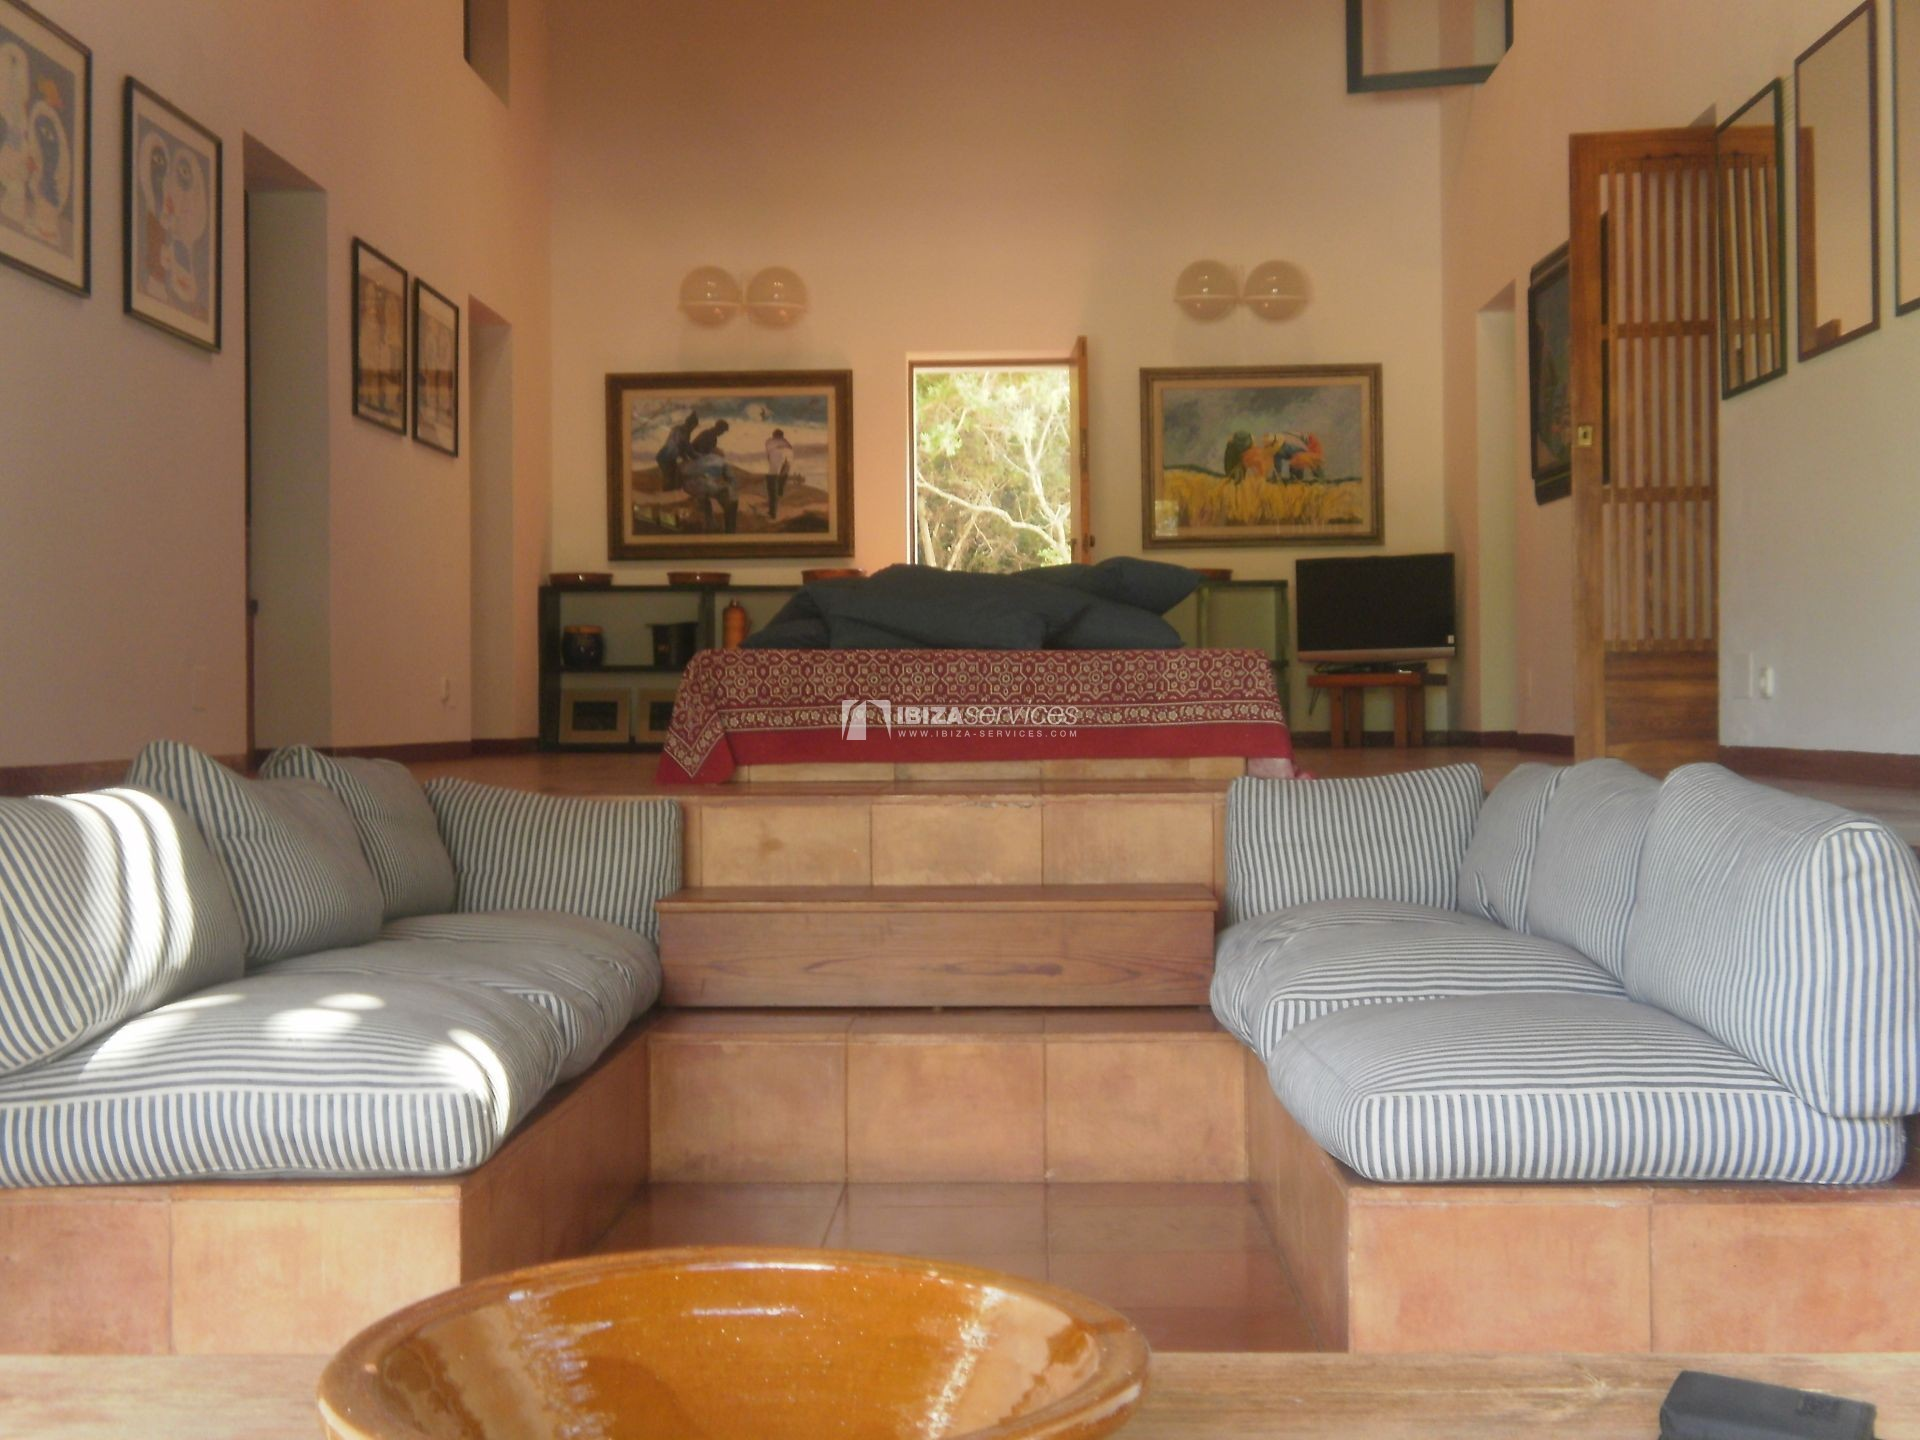 4 bedroom Villa for rent in Formentera perspectiva 13